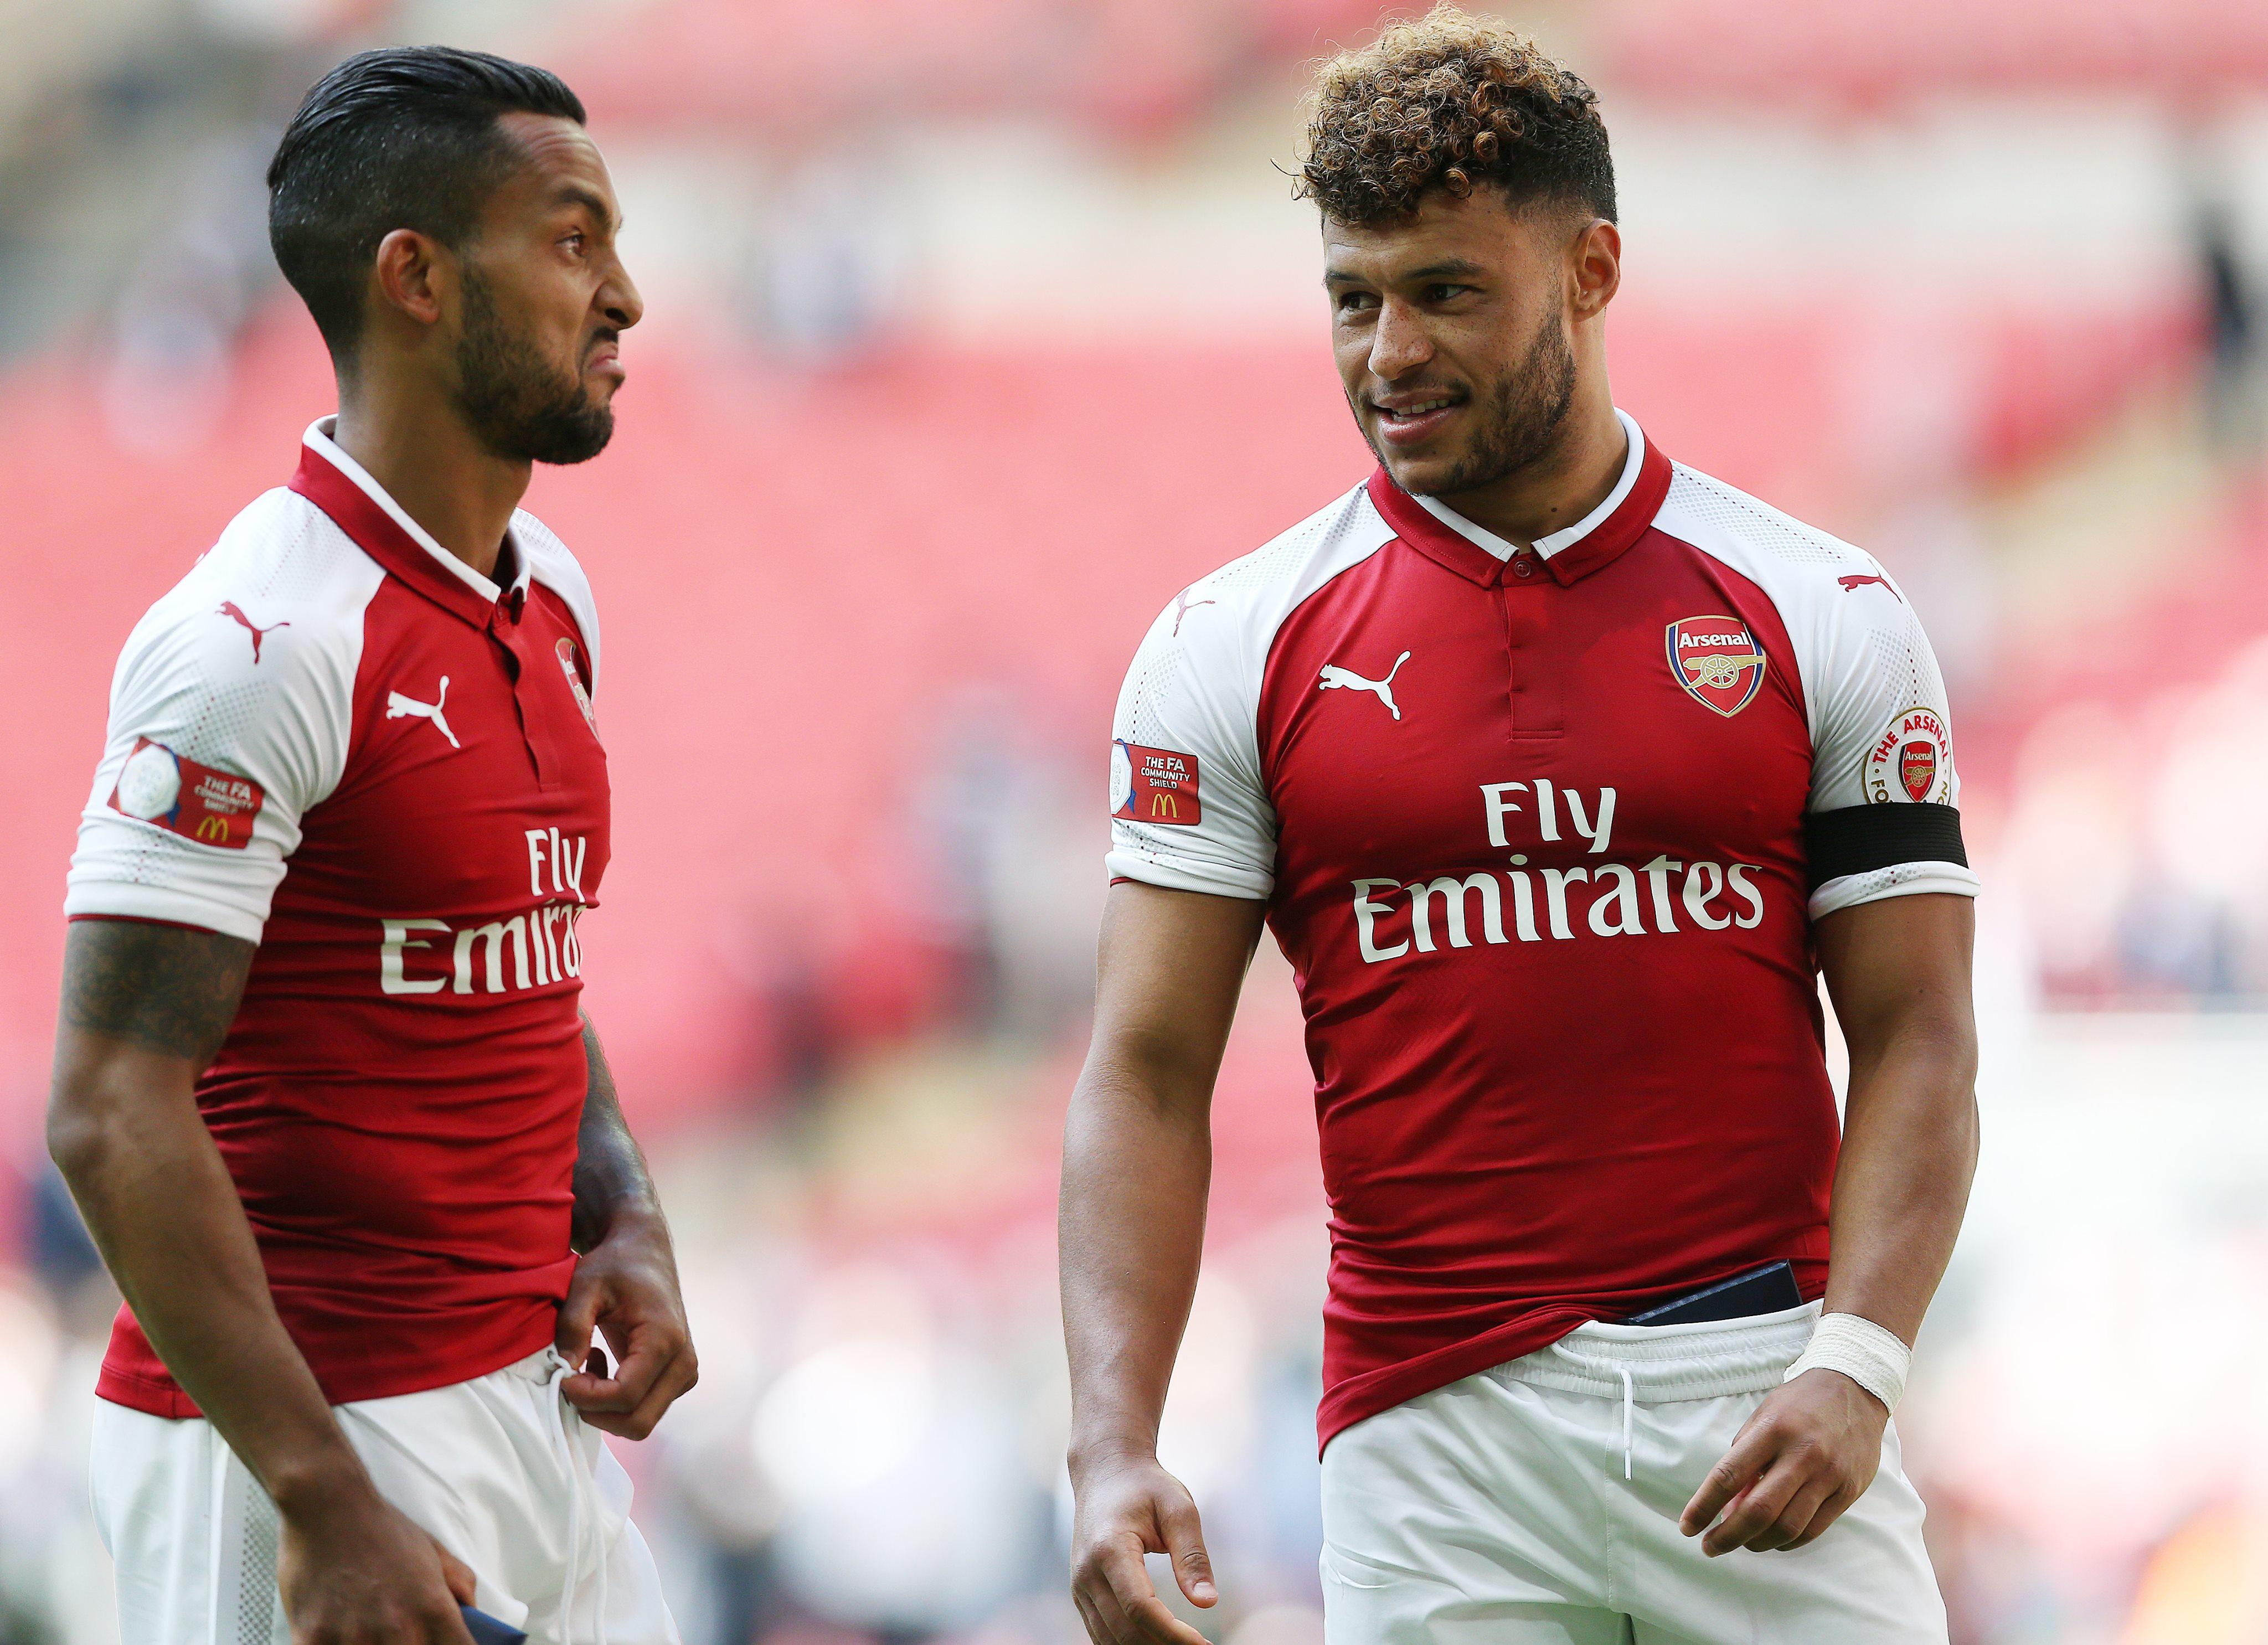 Alex Oxlade-Chamberlain gets unwittingly mugged by young Liverpool fan